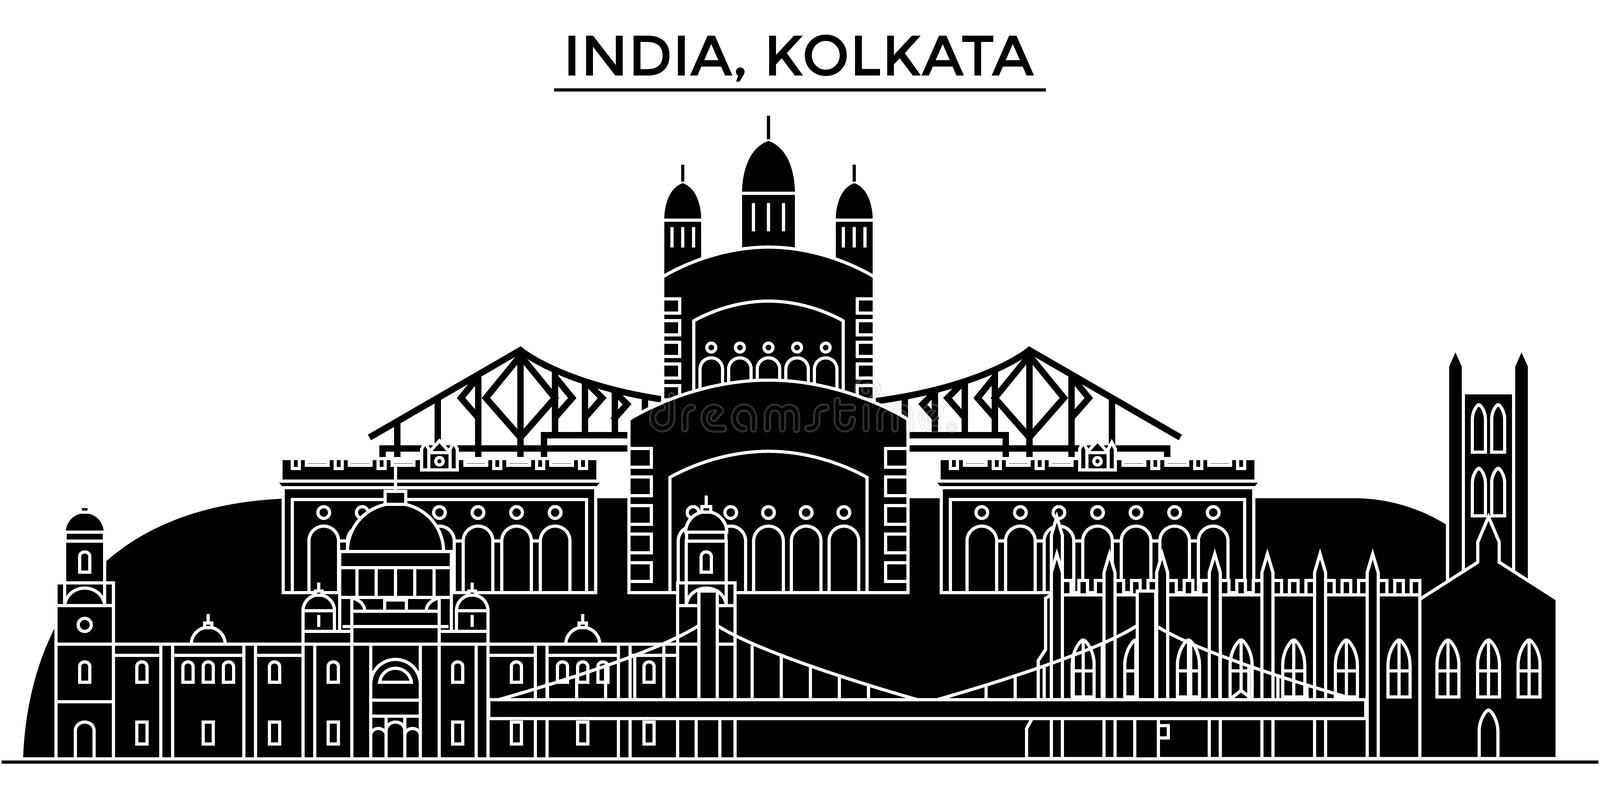 India, Kolkata architecture urban skyline. India, Kolkata architecture skyline with landmarks, urban cityscape, buildings, houses, ,vector city landscape stock illustration